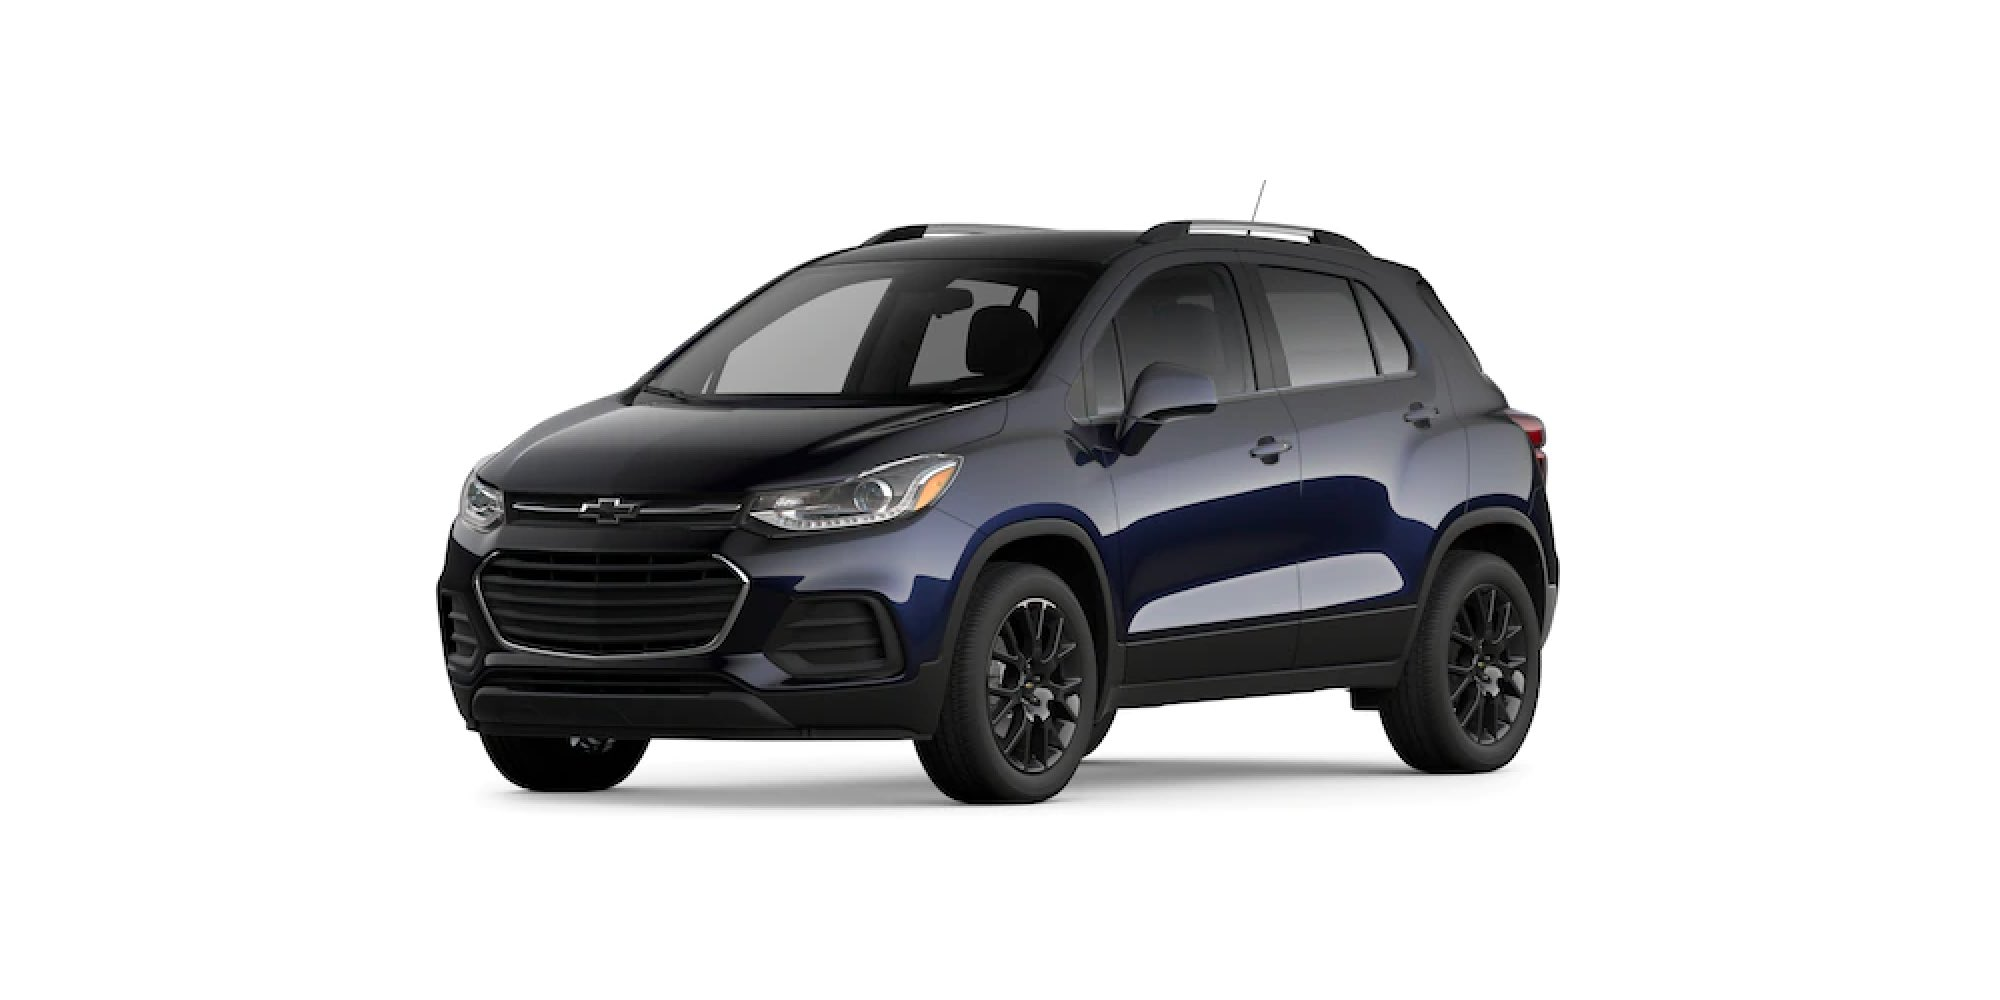 2021 Chevy Trax in MIDNIGHT BLUE METALLIC